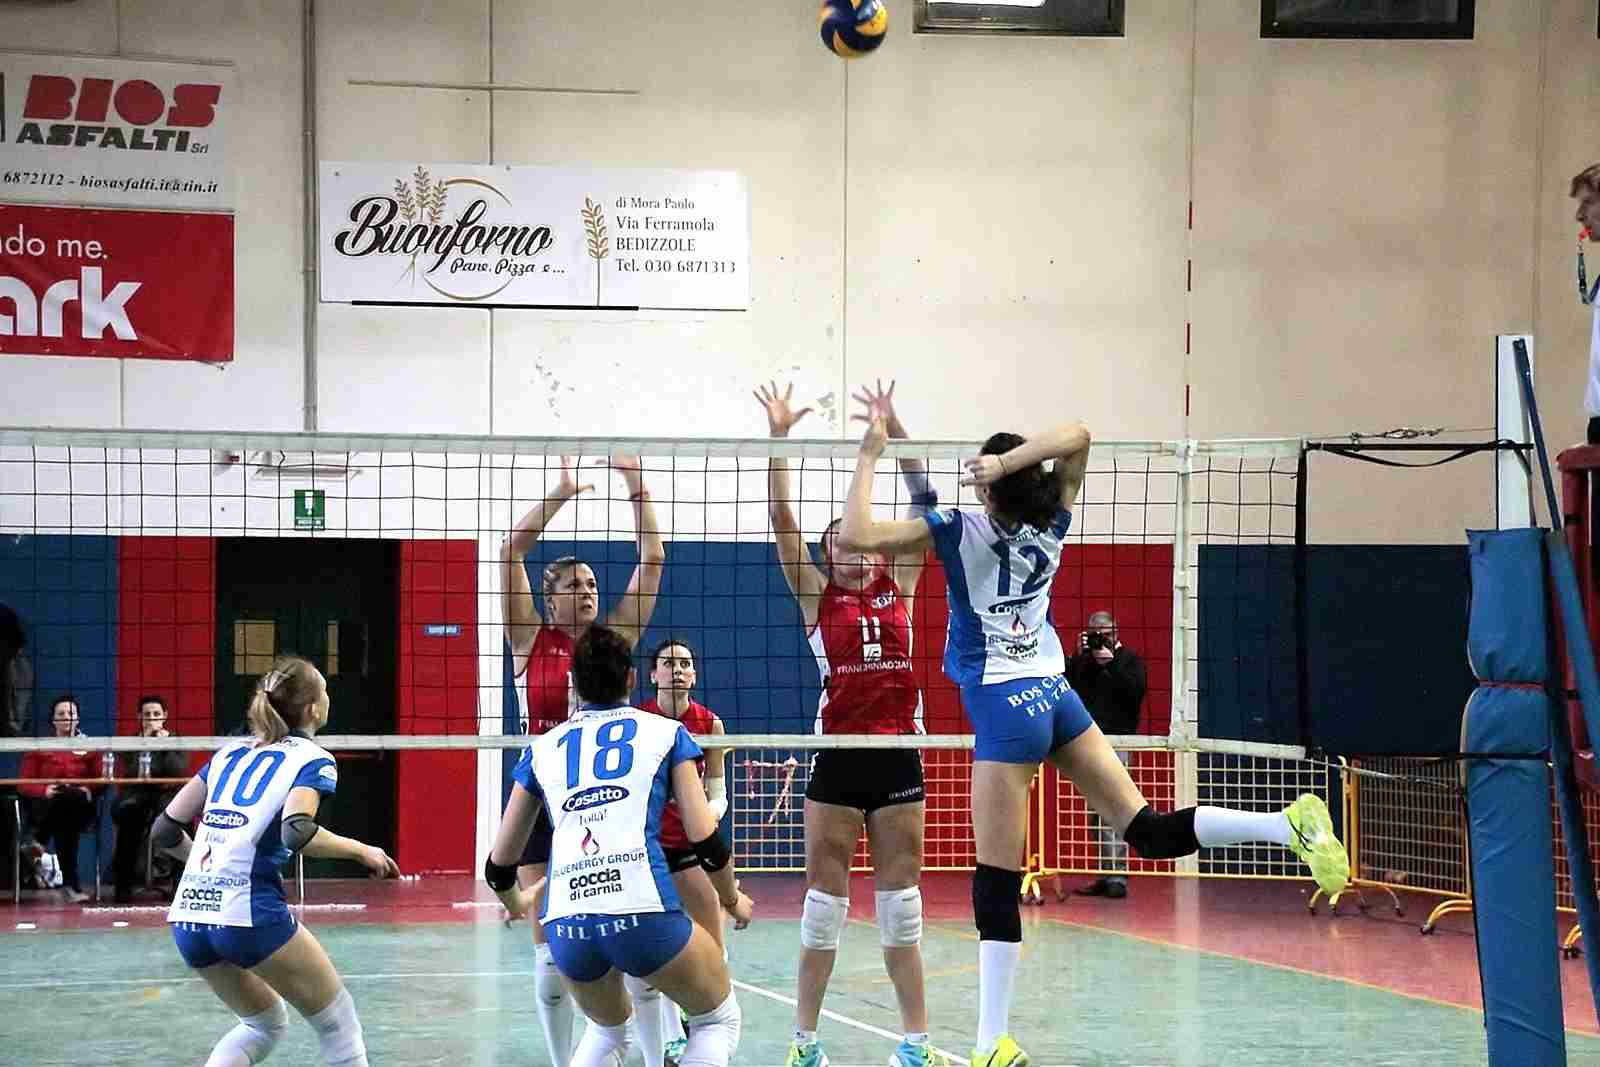 Bedizzole Volley vs Itas Martignacco